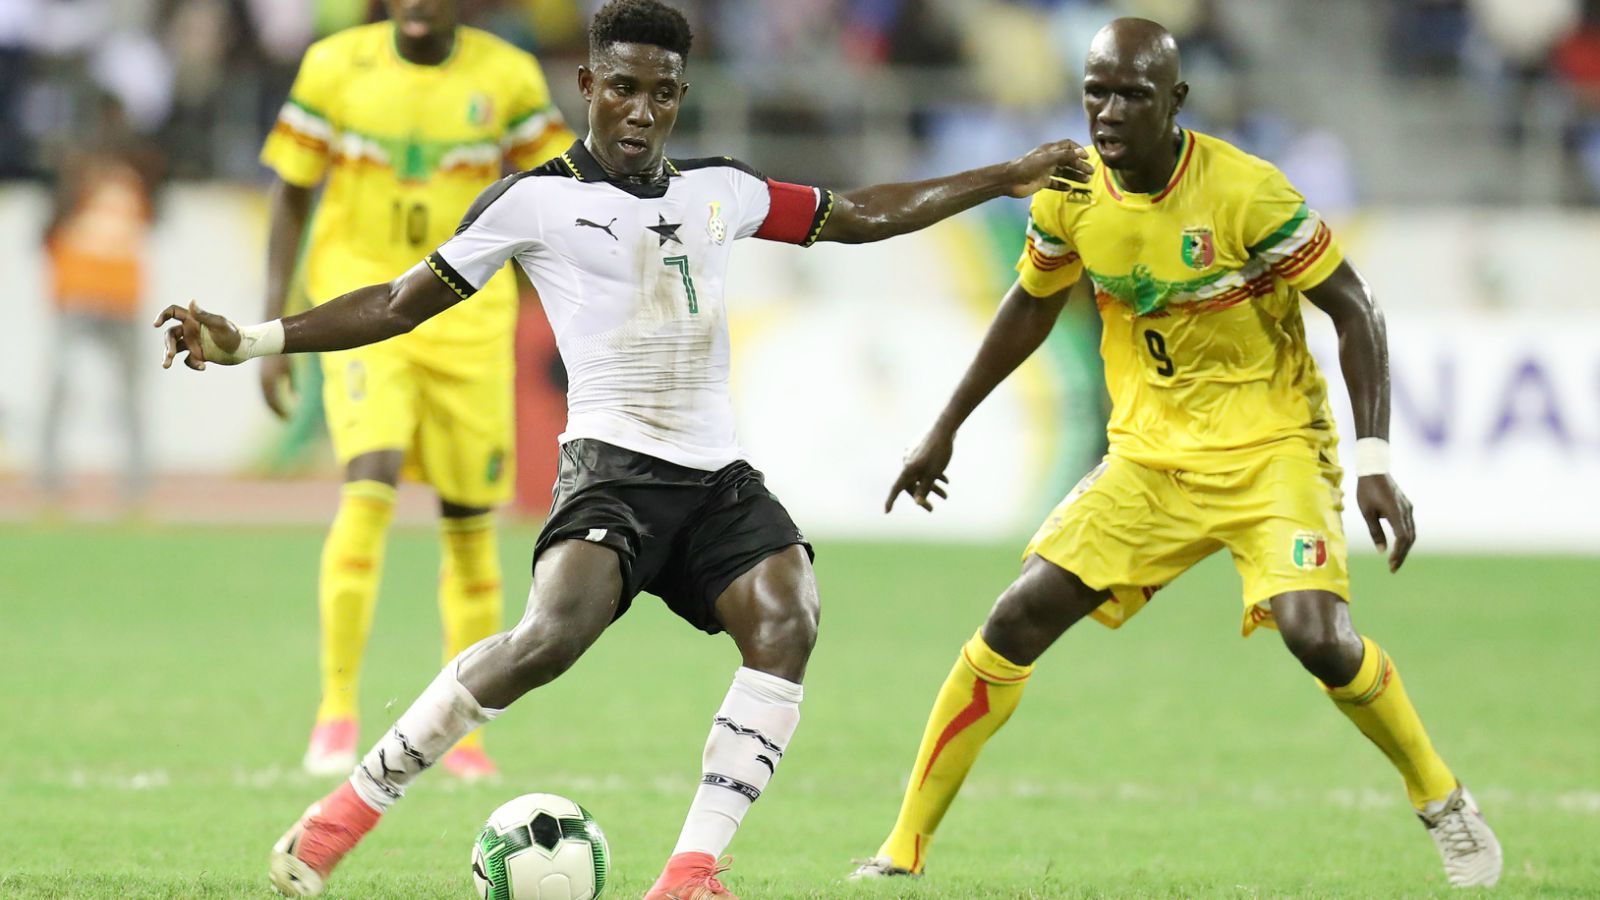 Isaac Twum insists Black Meteors are poised for Gabon test